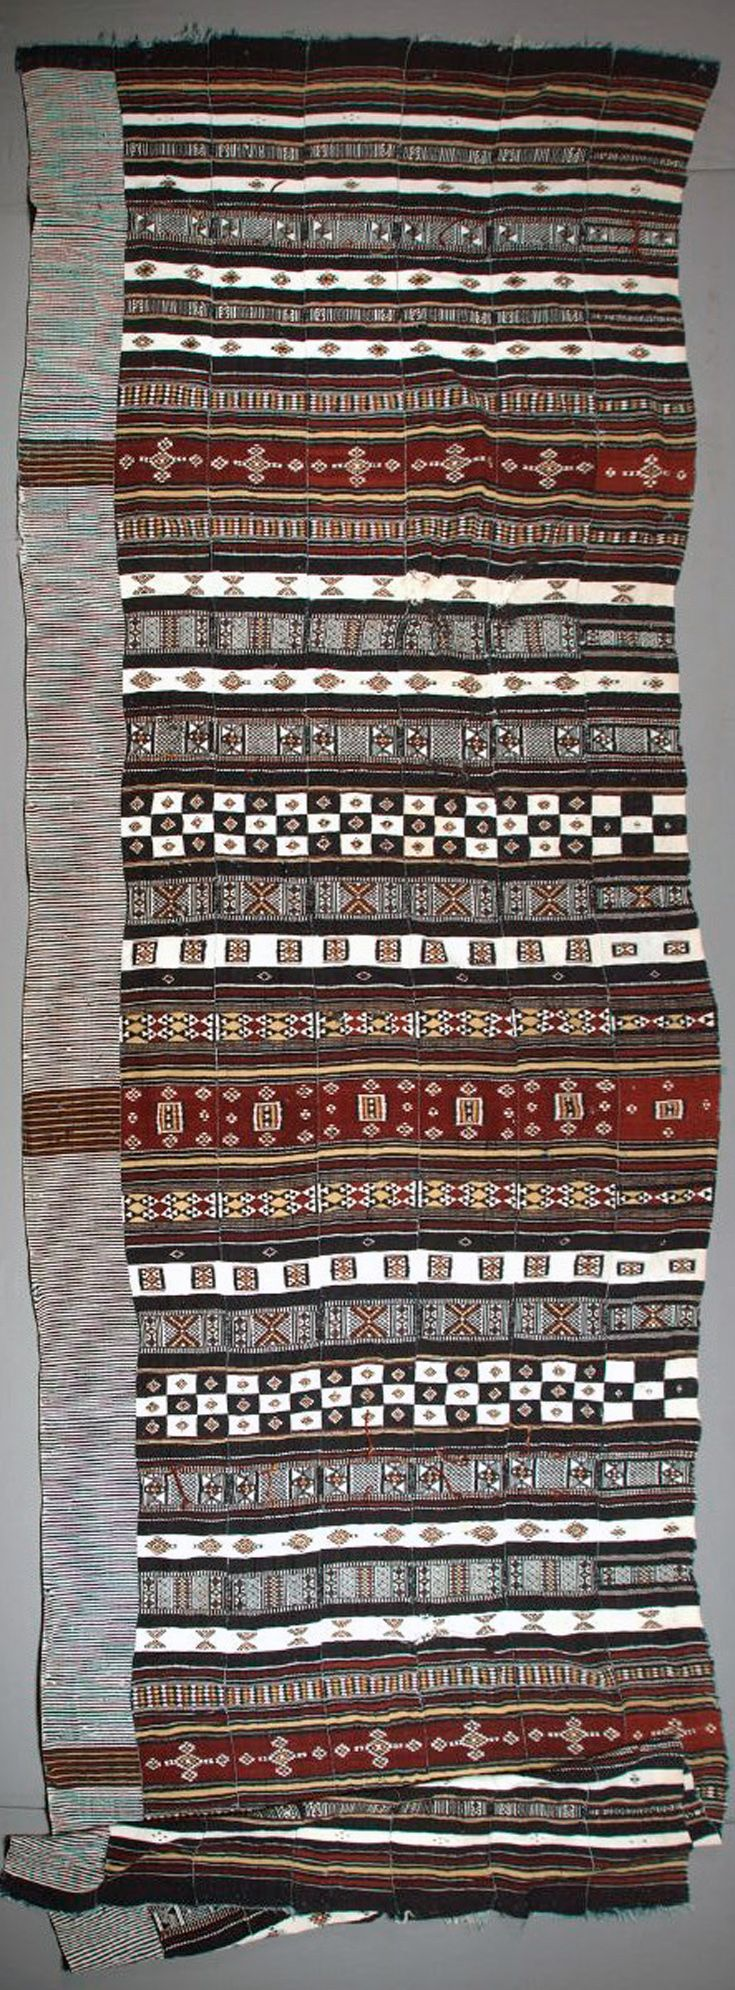 Africa   Wedding Hanging (arkilla) from the Fulani people of Mali   Early 20th century   Wool, cotton; weft-faced plain weave, tapestry weave, complementary weft patterning